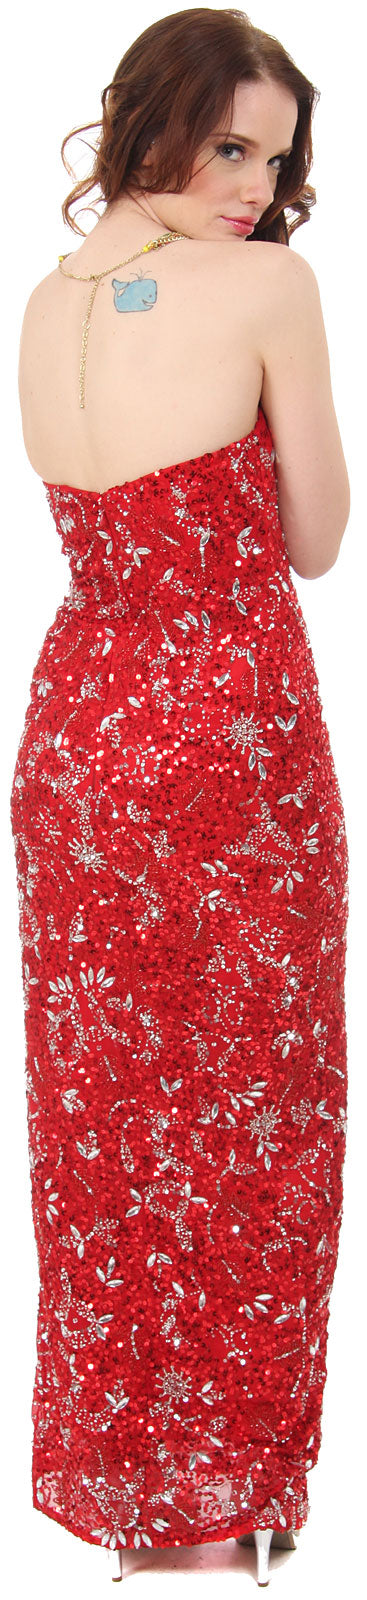 Image of Strapless Sequins & Rhinestones Long Formal Dress With Slit back in Red/Silver